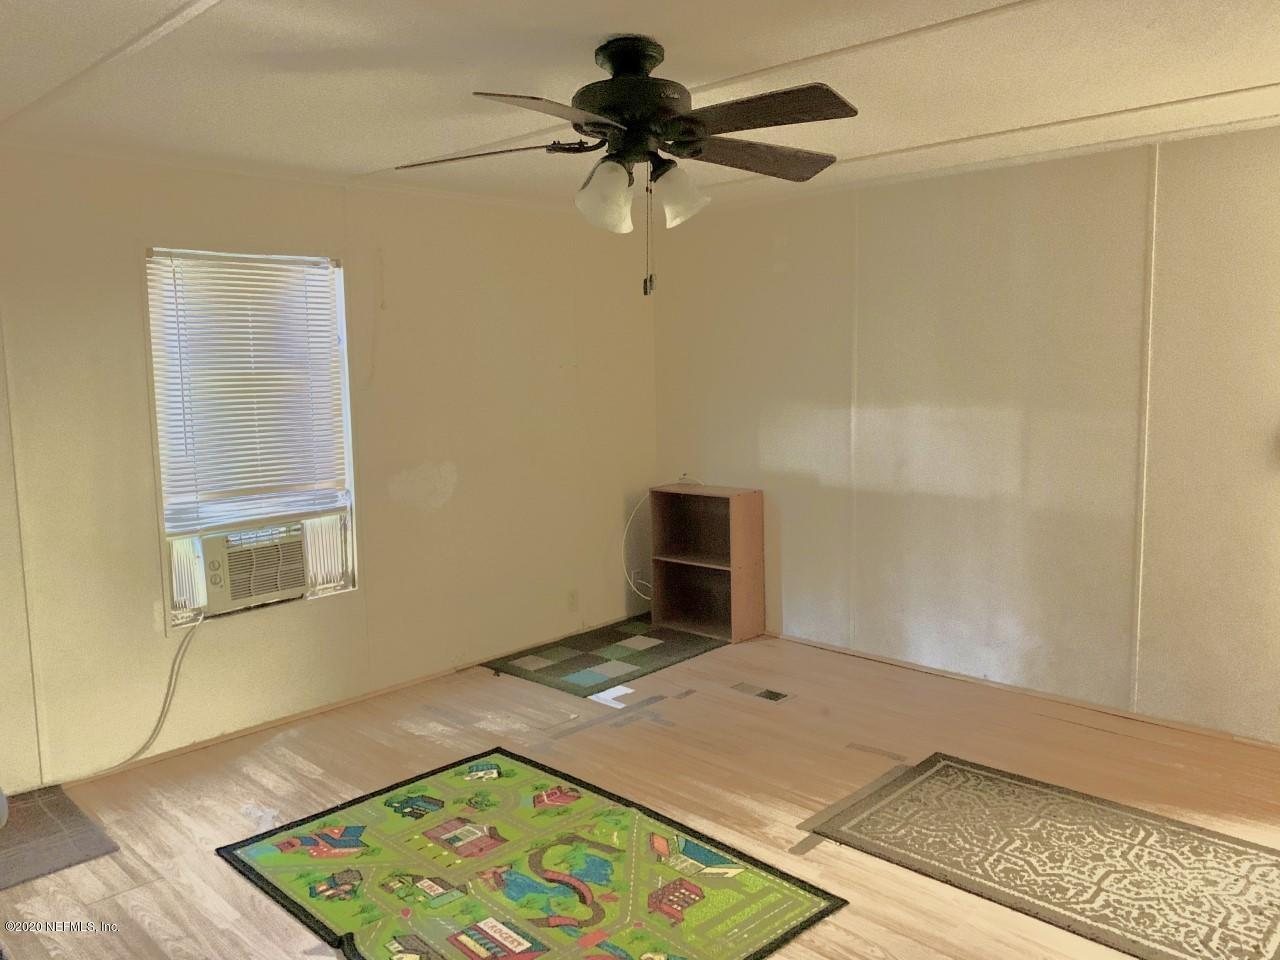 65 PEPPERMINT, MIDDLEBURG, FLORIDA 32068, 3 Bedrooms Bedrooms, ,2 BathroomsBathrooms,Residential,For sale,PEPPERMINT,1066148